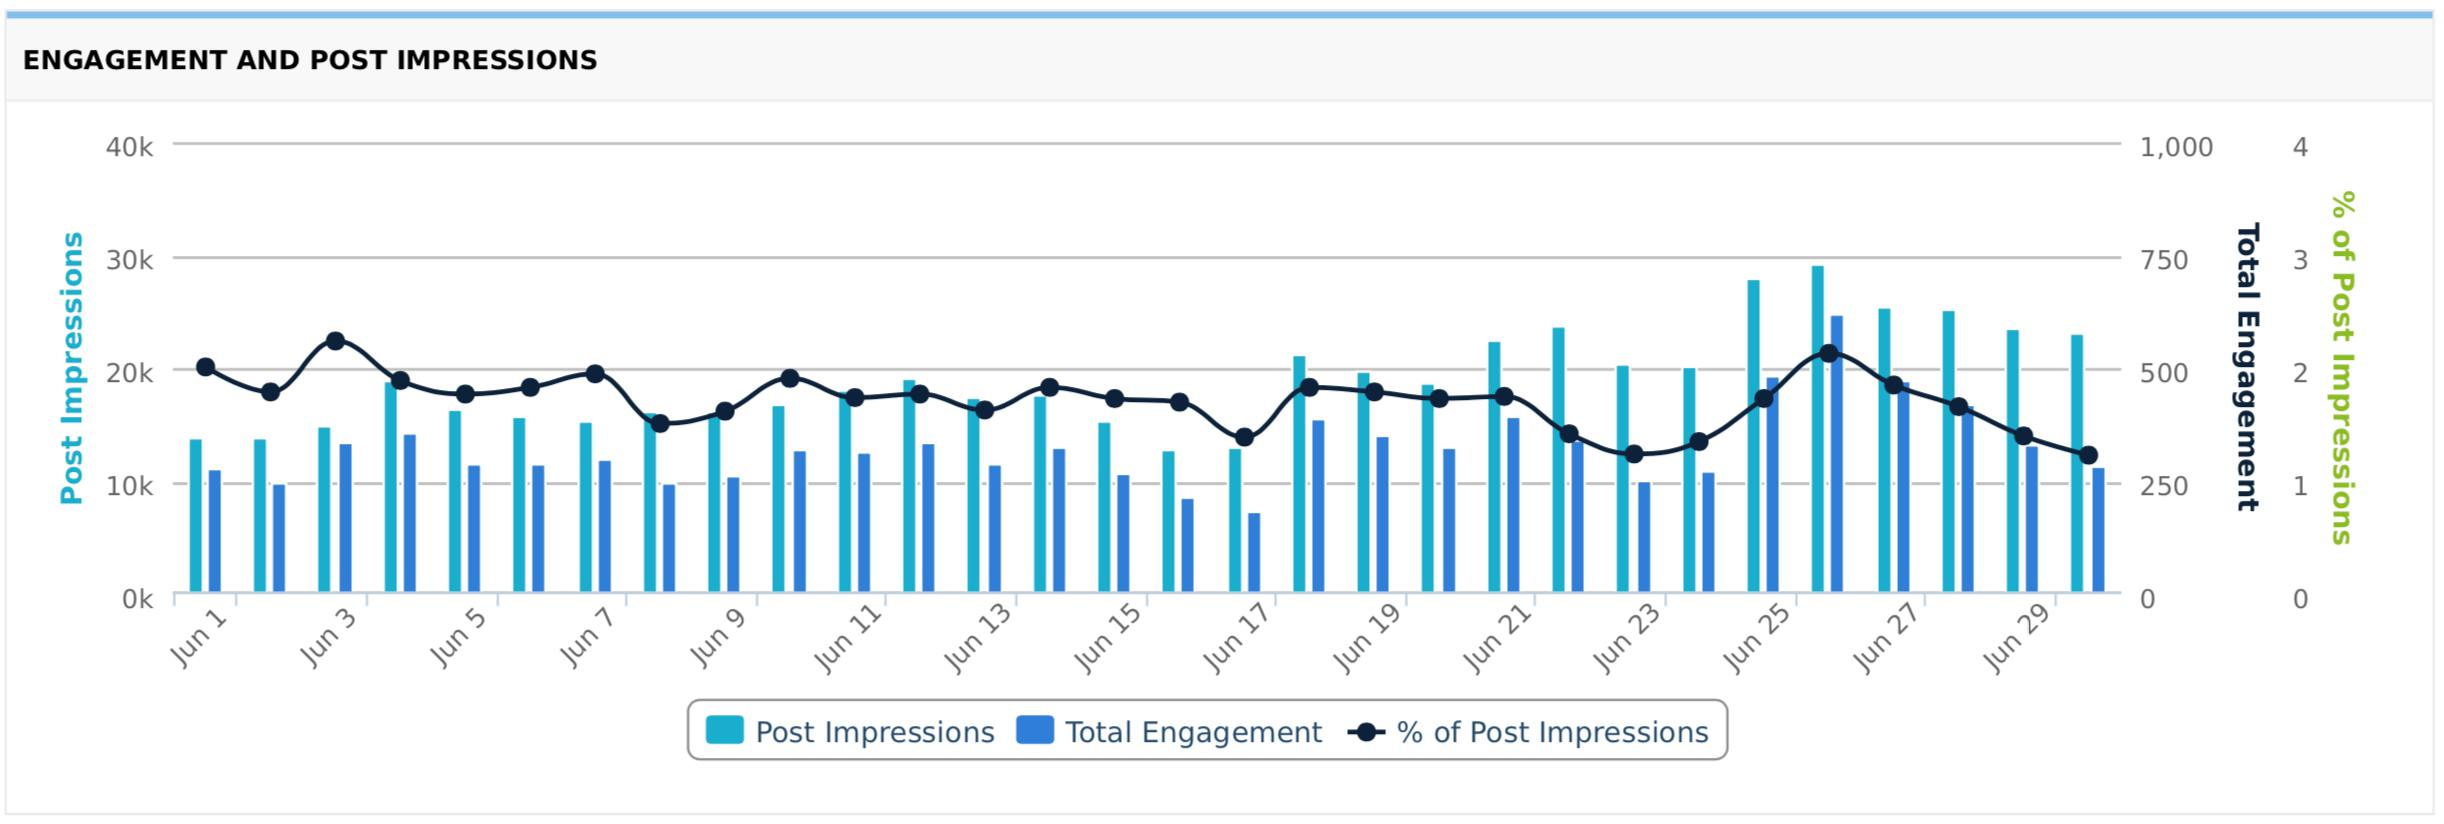 Engagement and Post Impressions